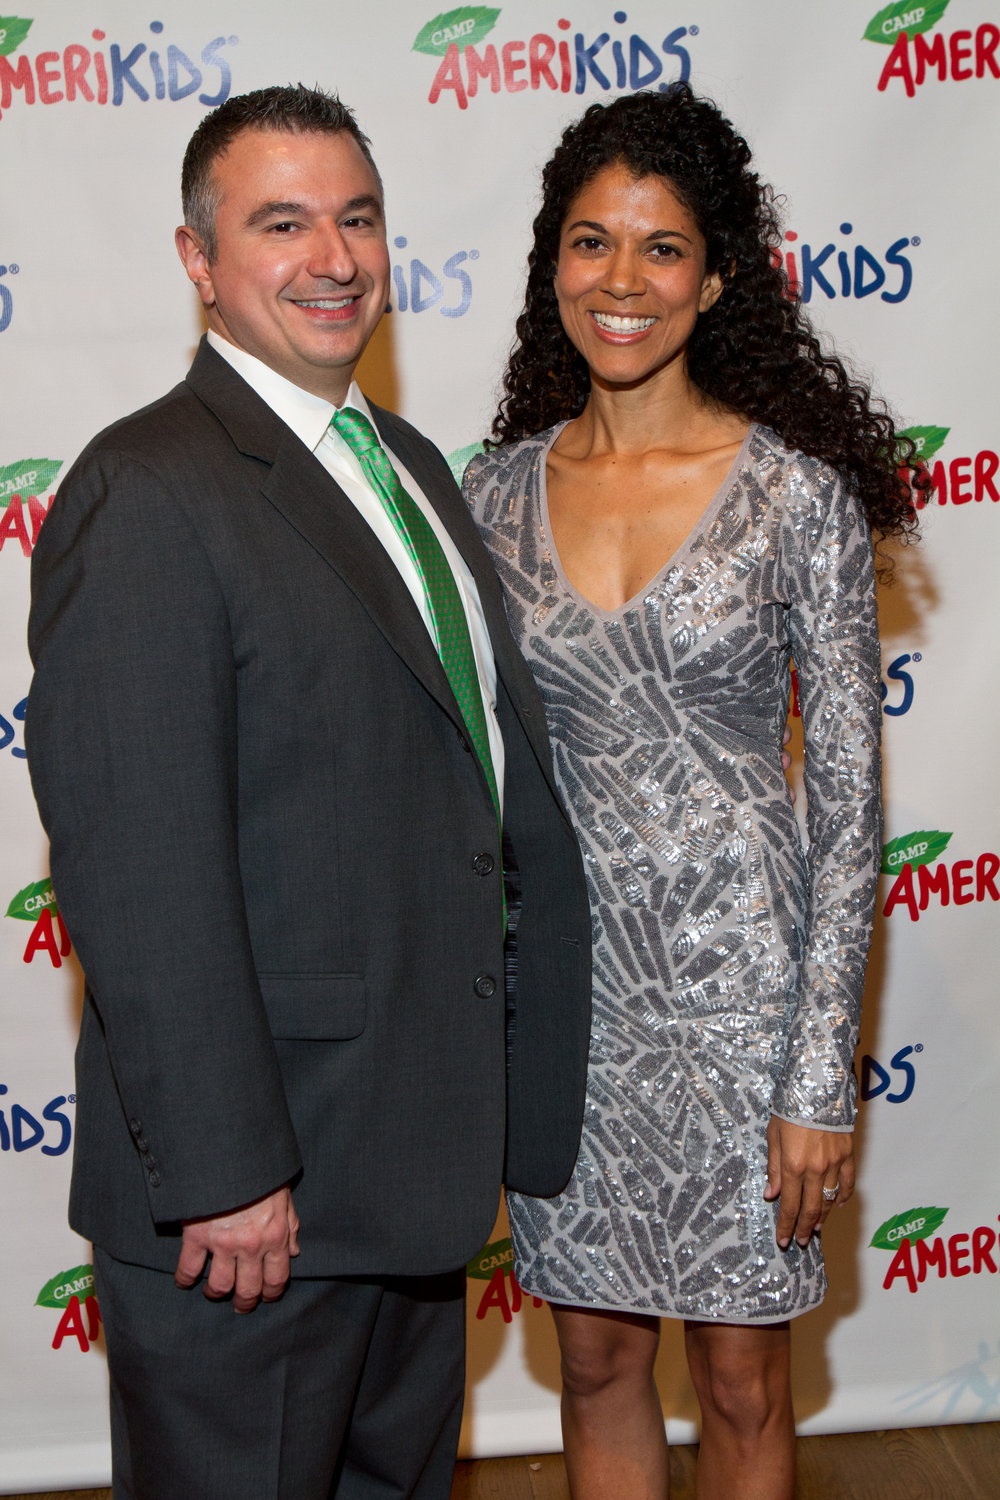 2014 Camp AmeriKids Fundraiser_9264.jpg